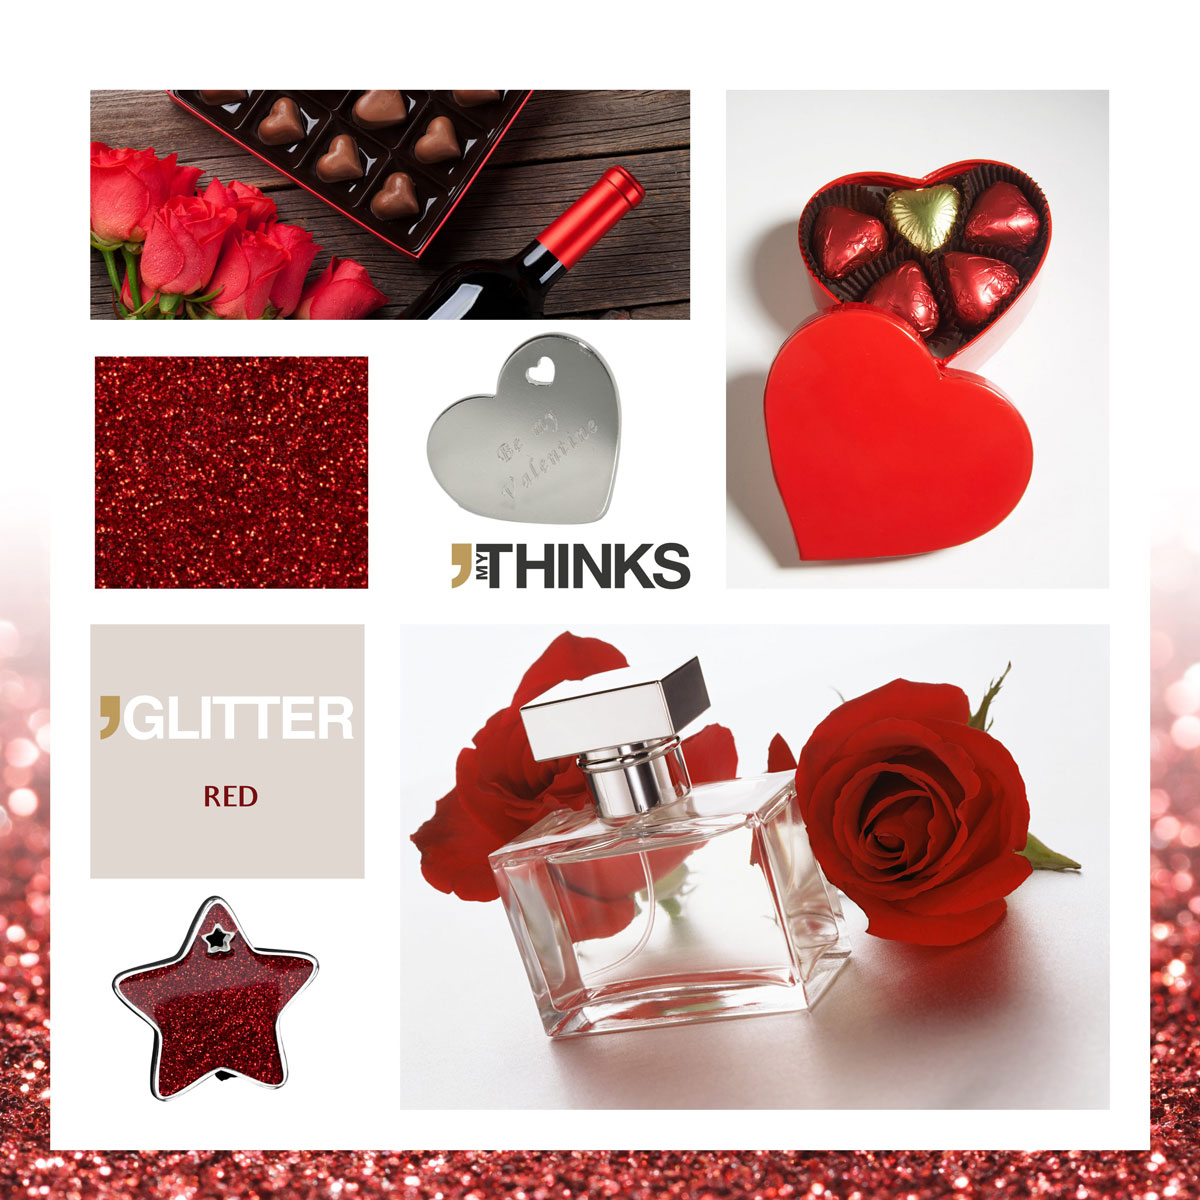 Mood board Glitter collection gifts with shiny red enamelling on chromed zamak tag personalized for the delicatessen and perfume market